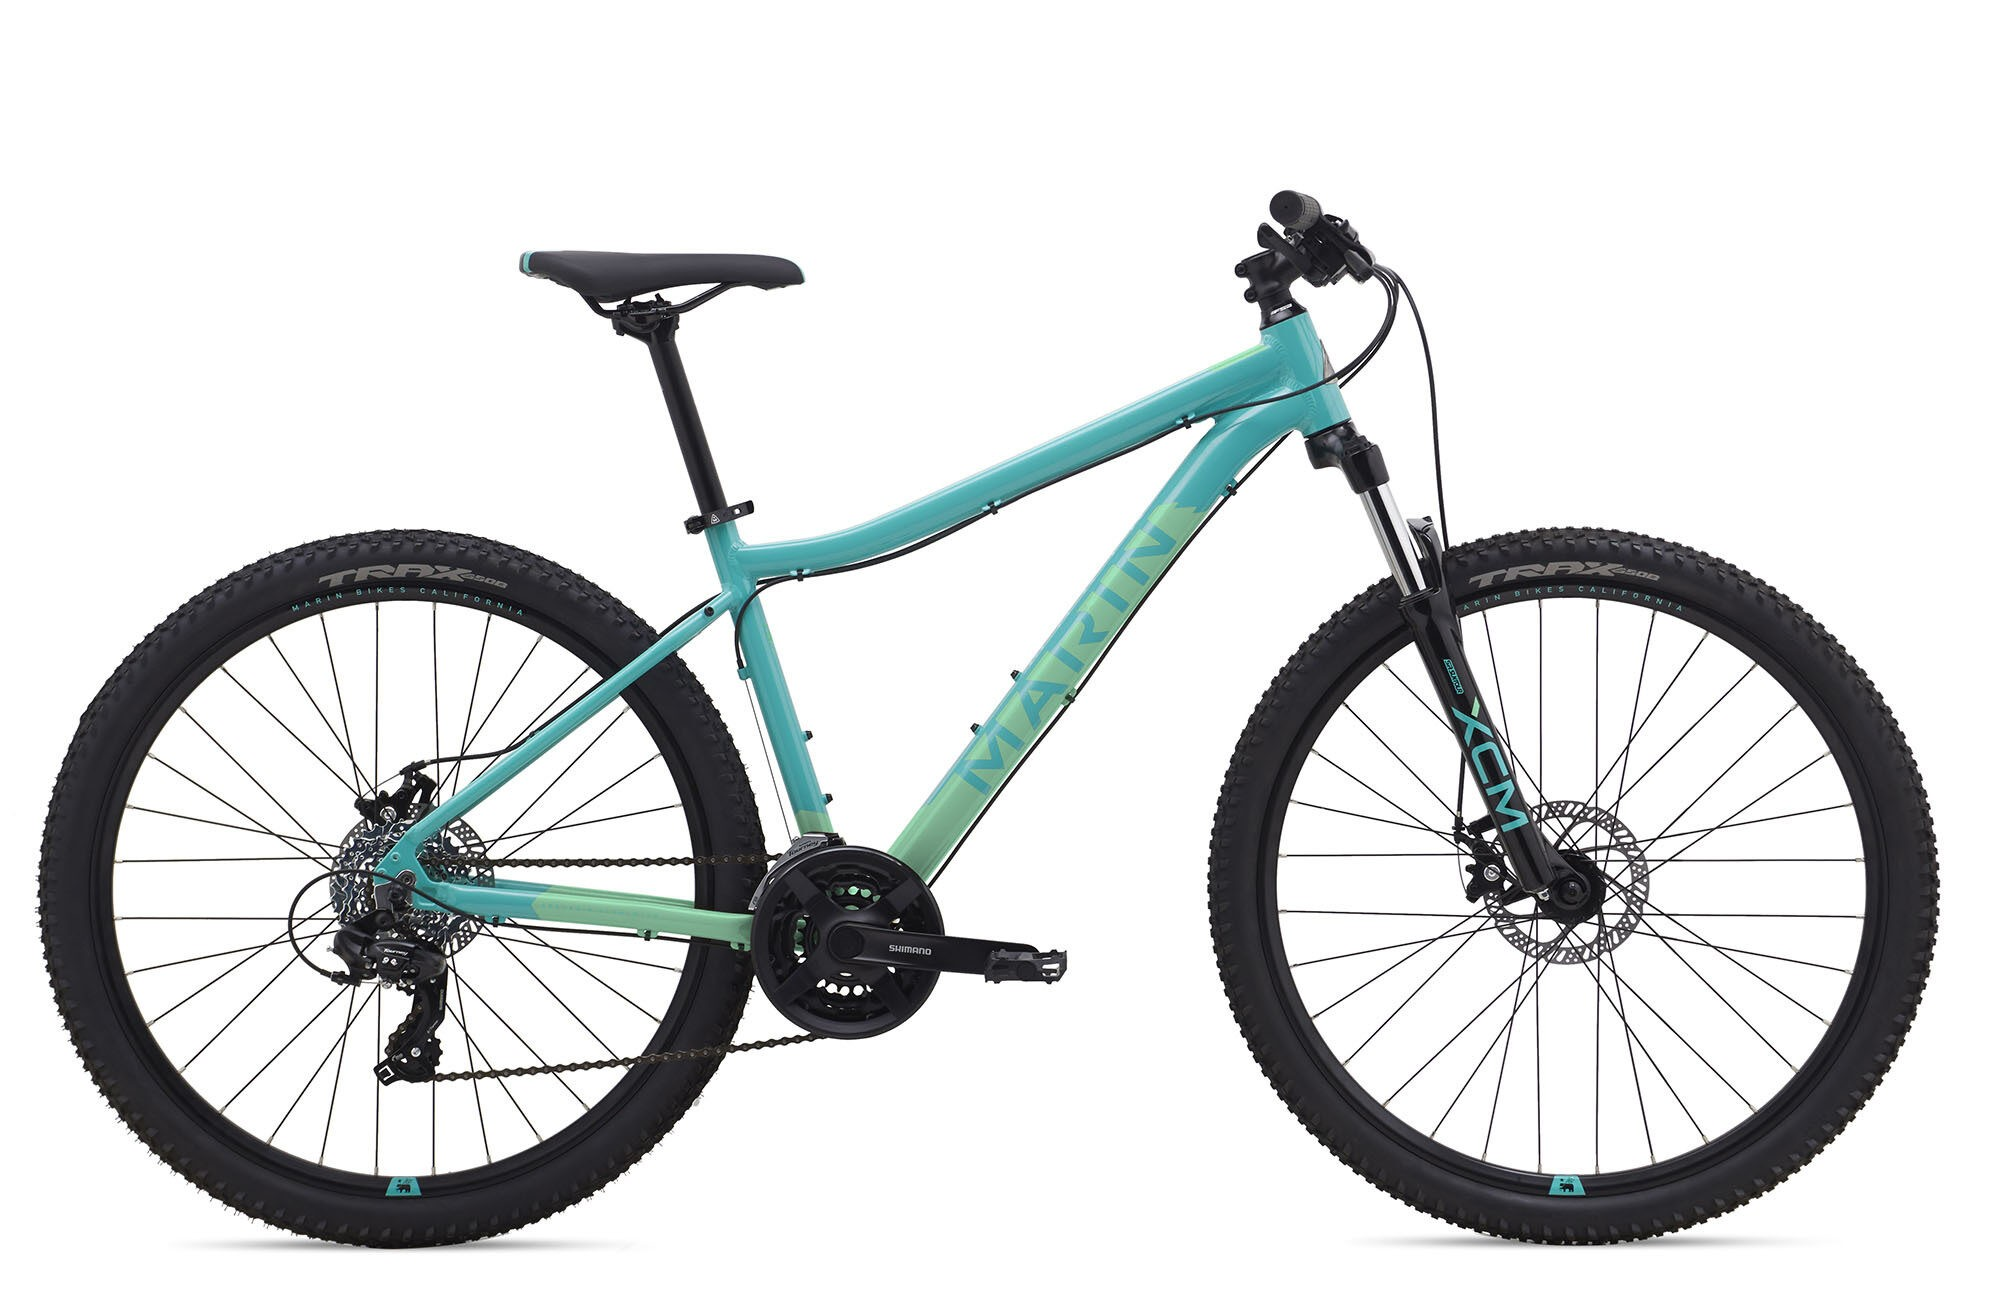 Rower Marin Wildcat Trail WFG1 Disc 27.5 Teal 2019